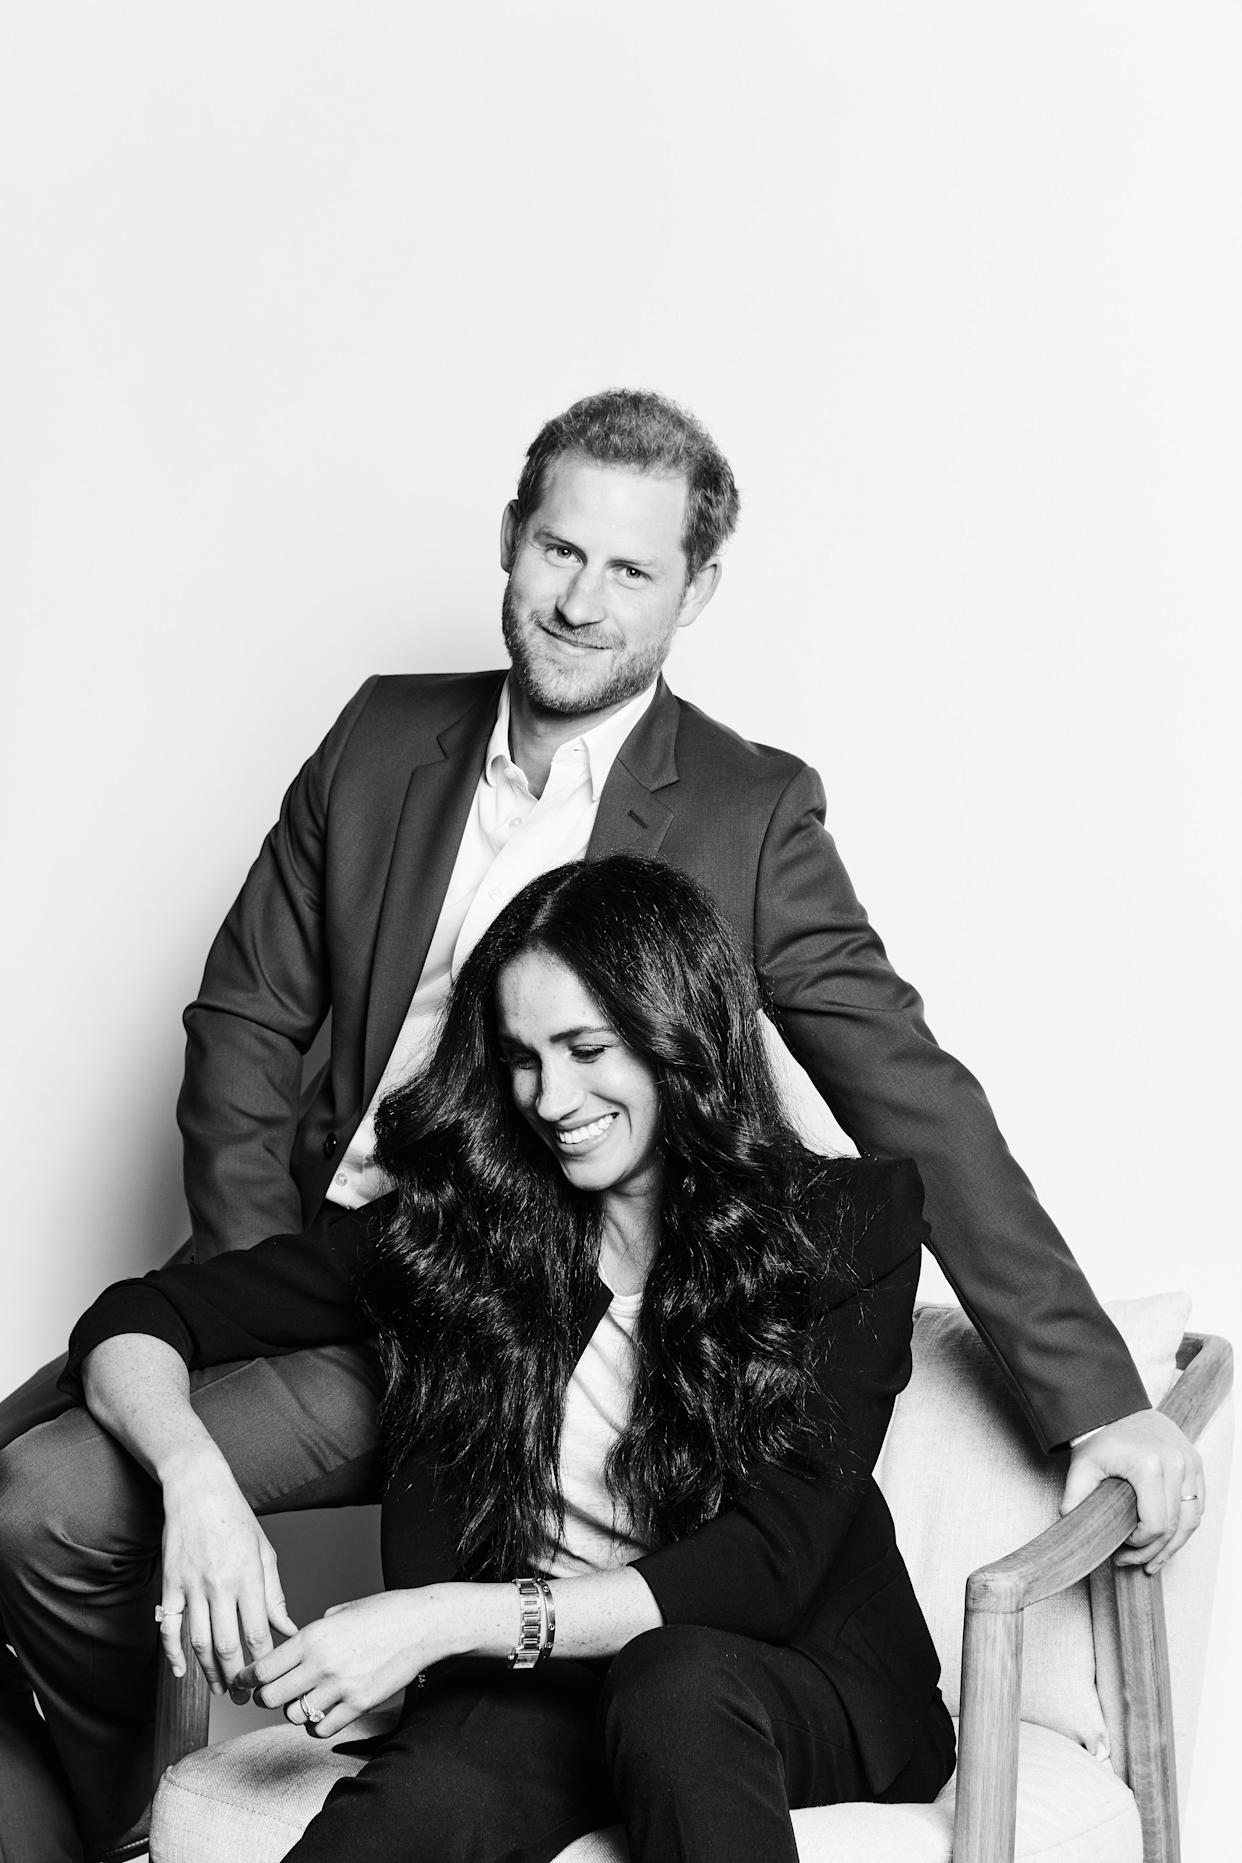 The post for Archie's birthday was shared on Global Citizen alongside this image of the duke and duchess. (Matt Sayles)